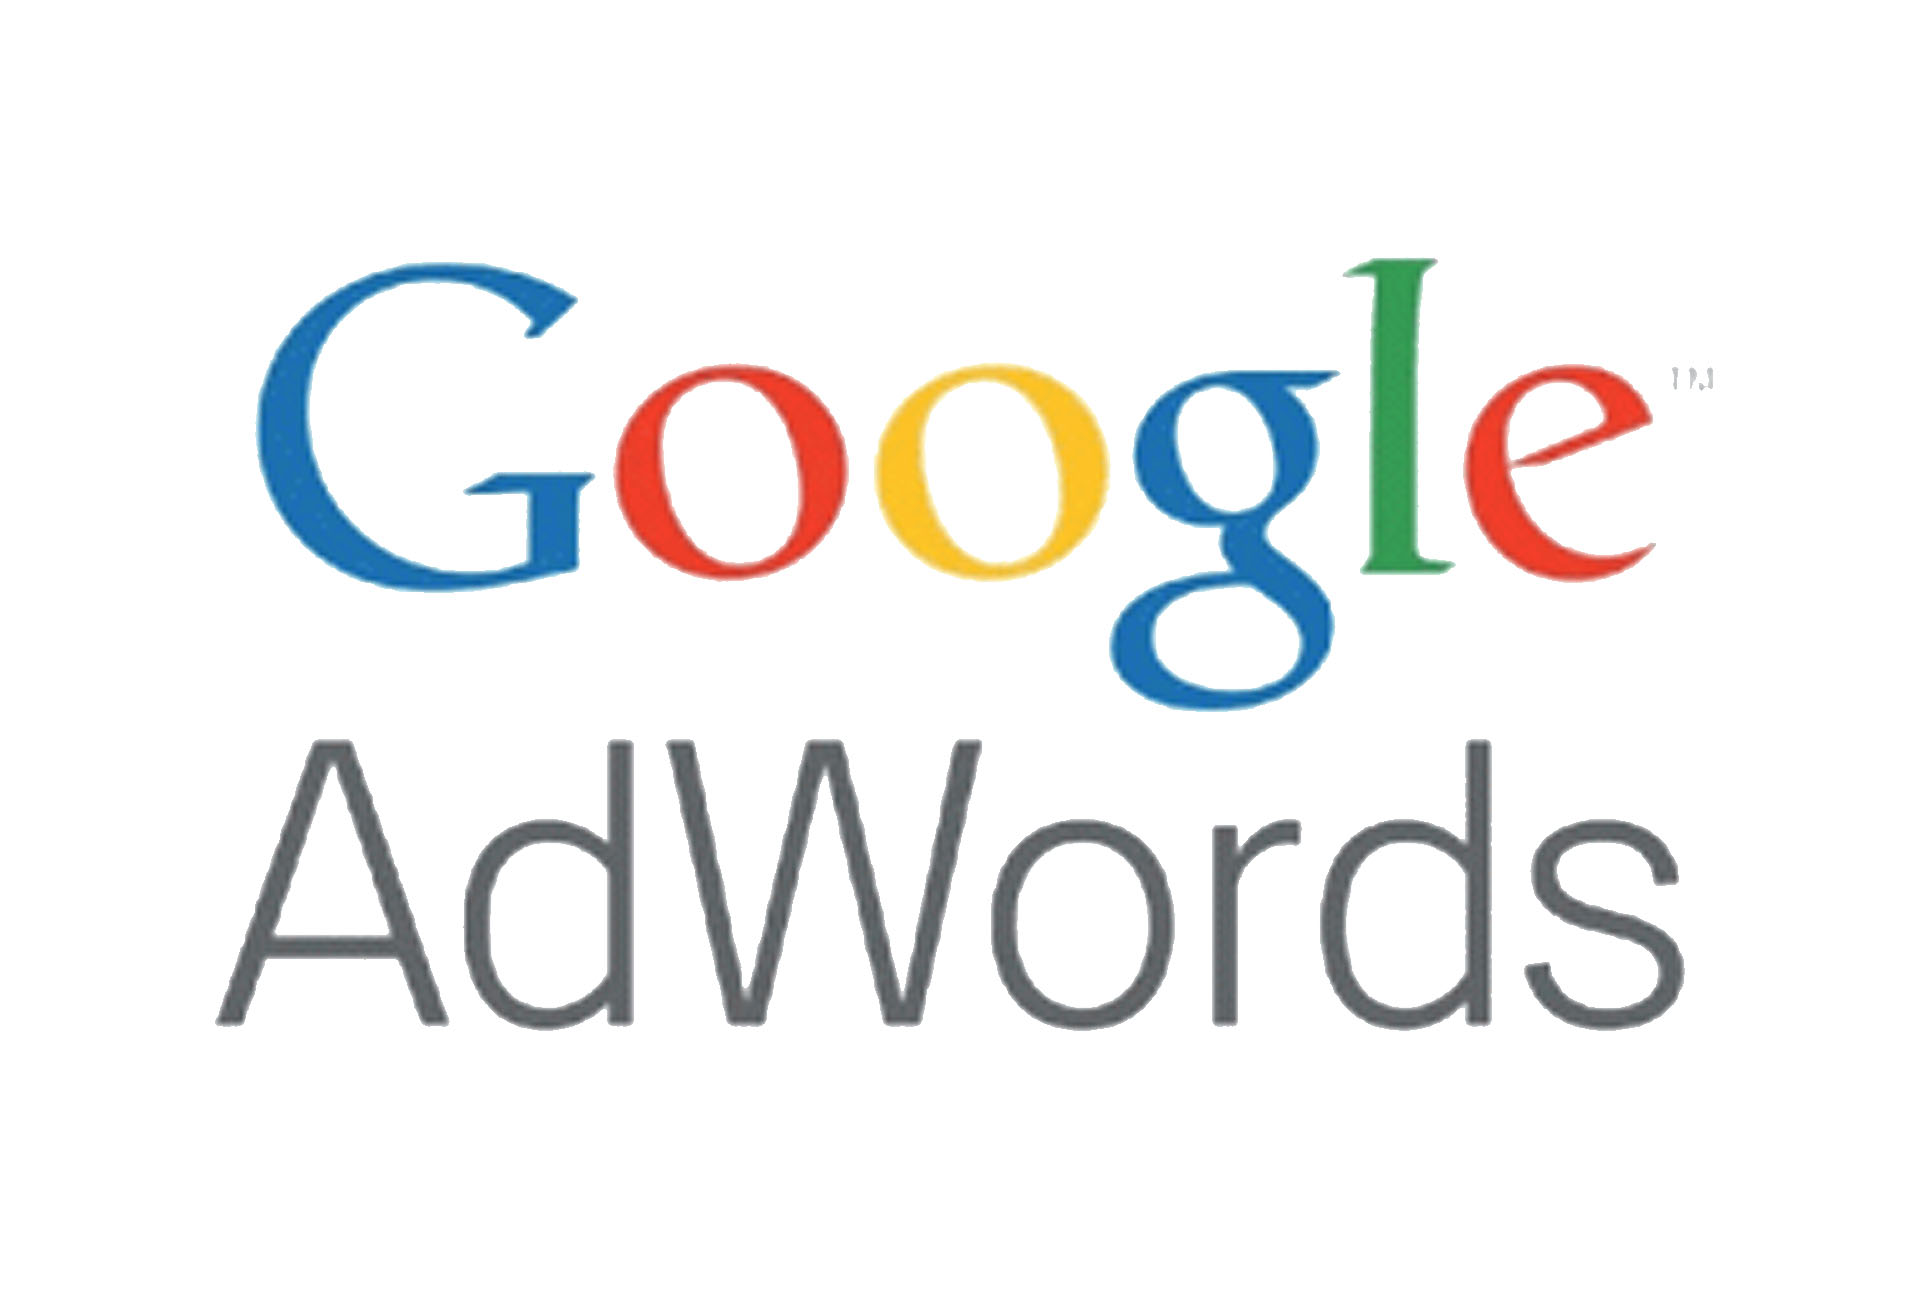 Google-adwords links patrocinados